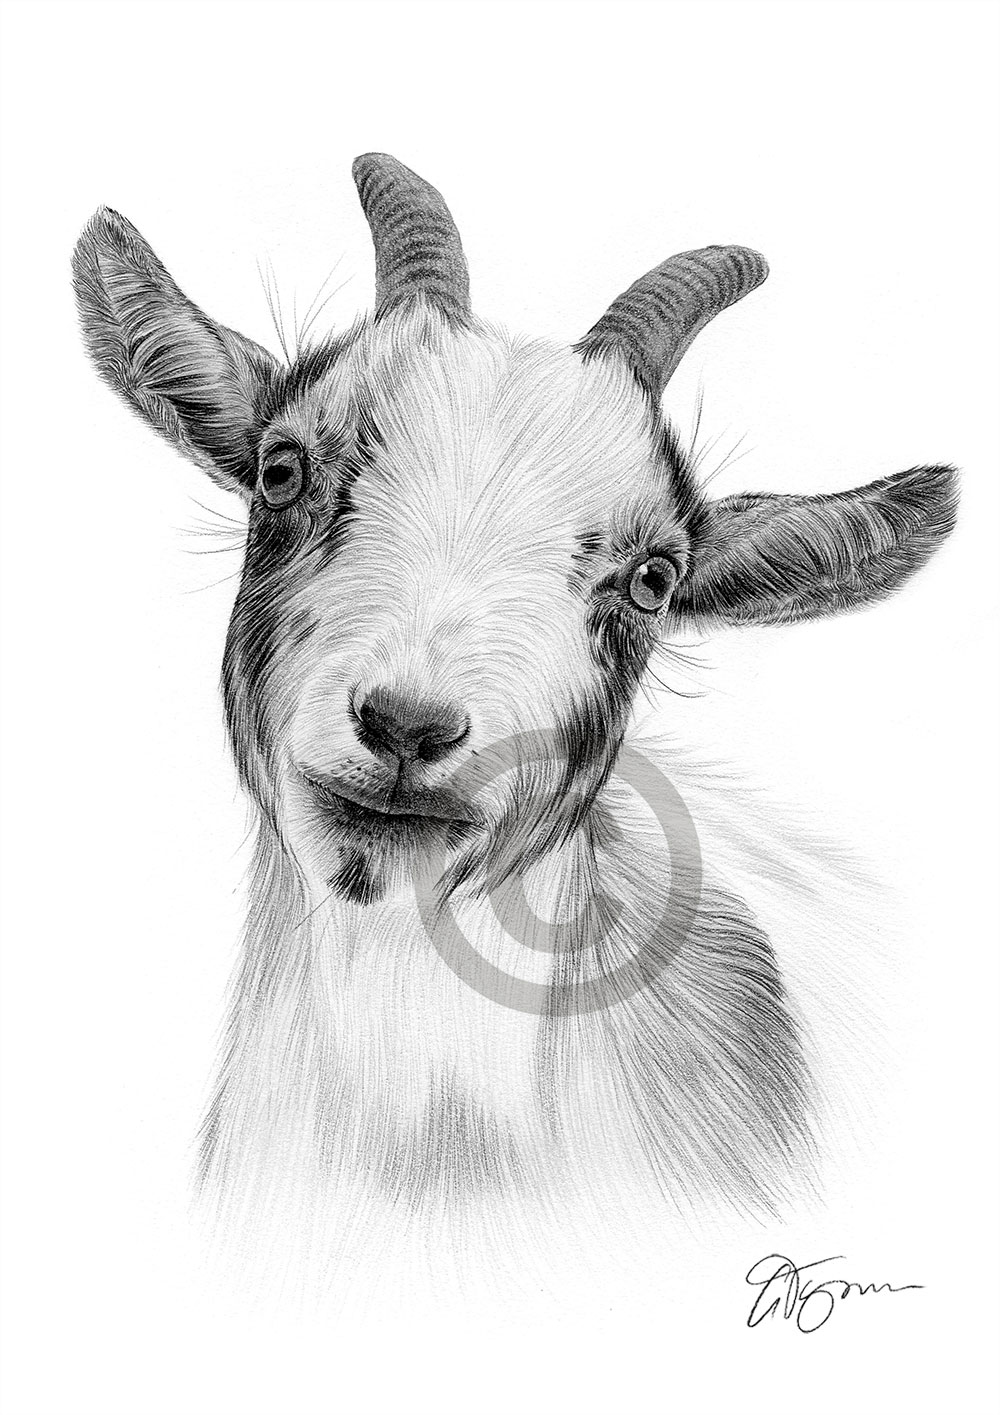 Pencil drawing of a pygmy goat by artist Gary Tymon